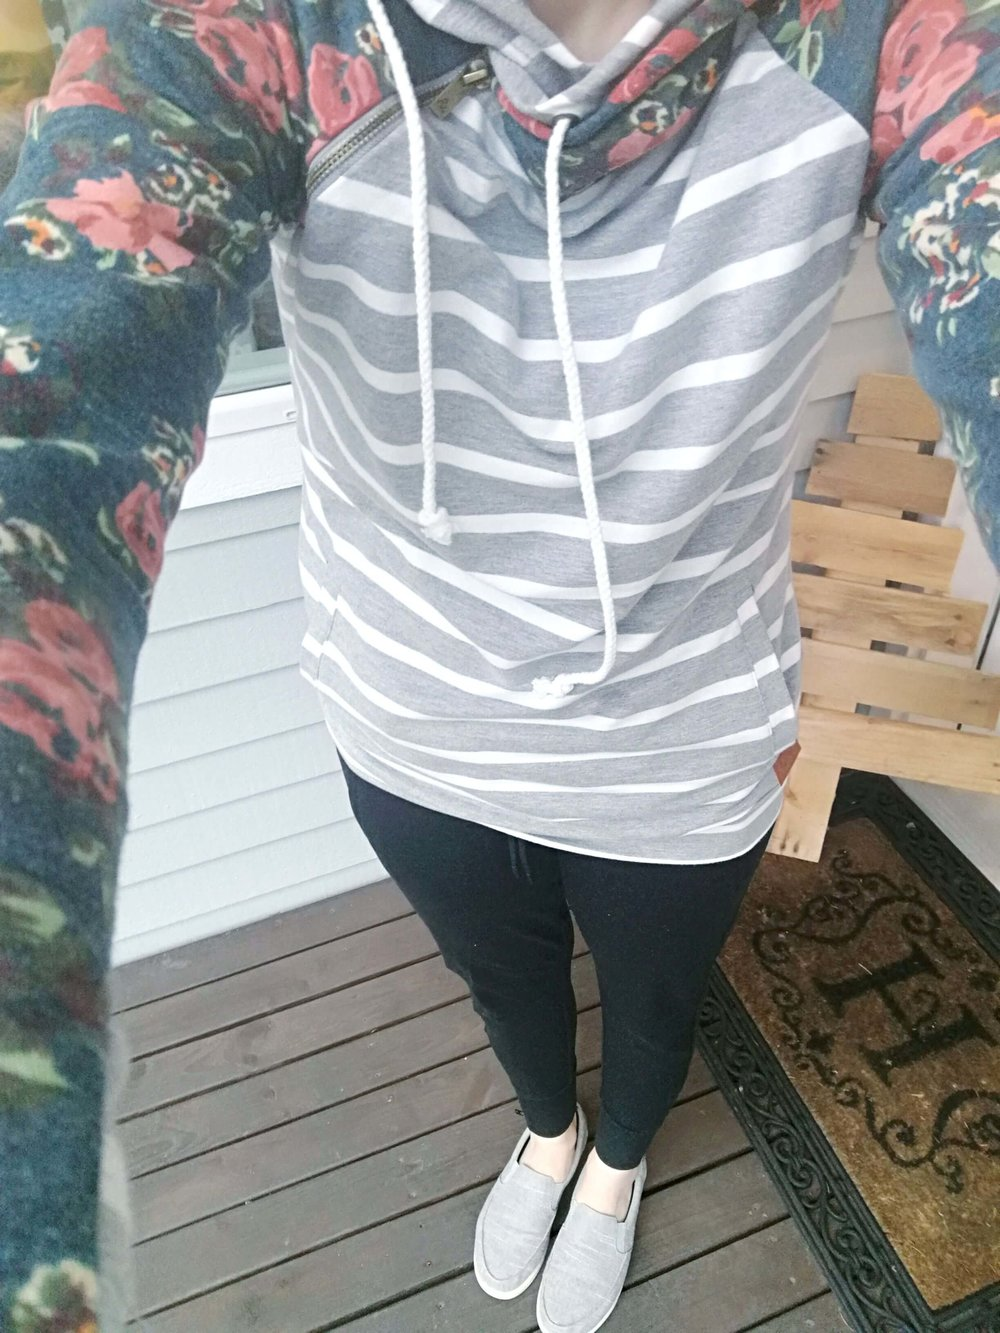 Winter comfy weekend or lazy day outfit idea Double Hooded Hoodie by Mindy Mae's Market shop + Athleta Joggers + Slip On Sneakers.jpg